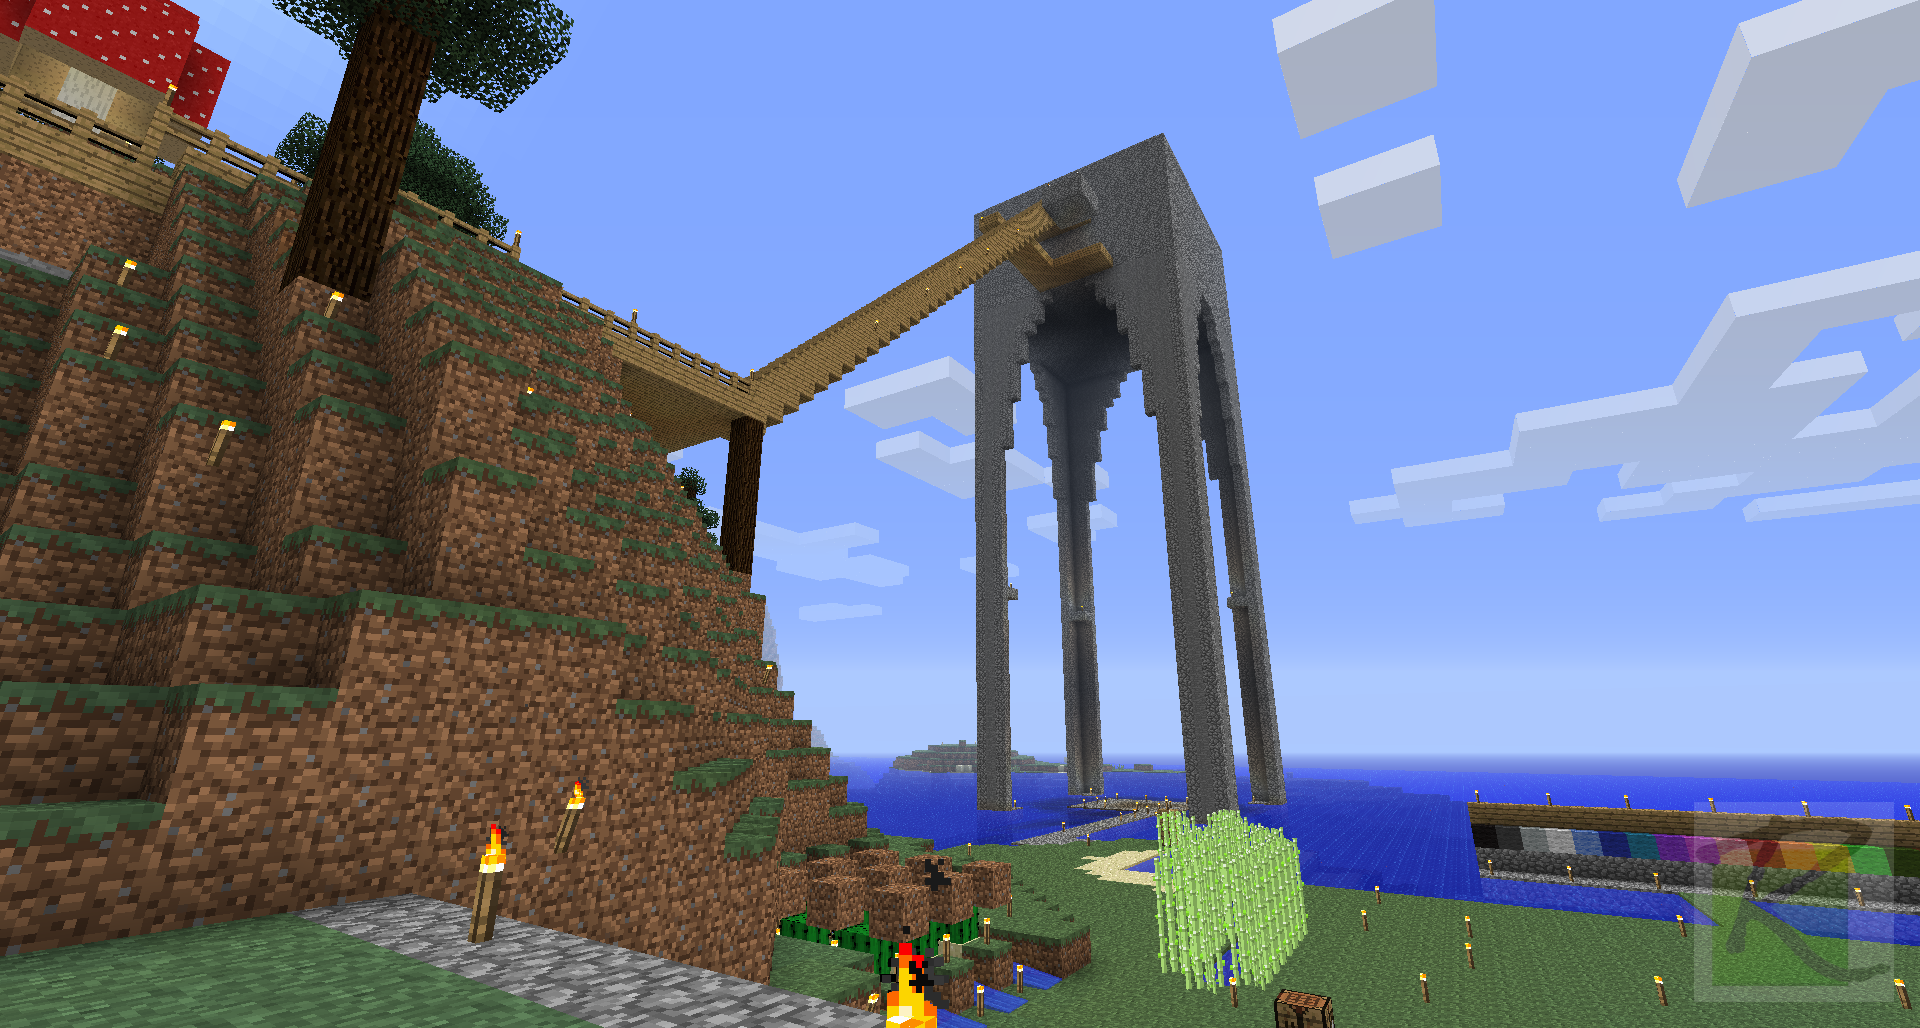 Giant Mob Spawner Room Tower Close To Completion Minecraft